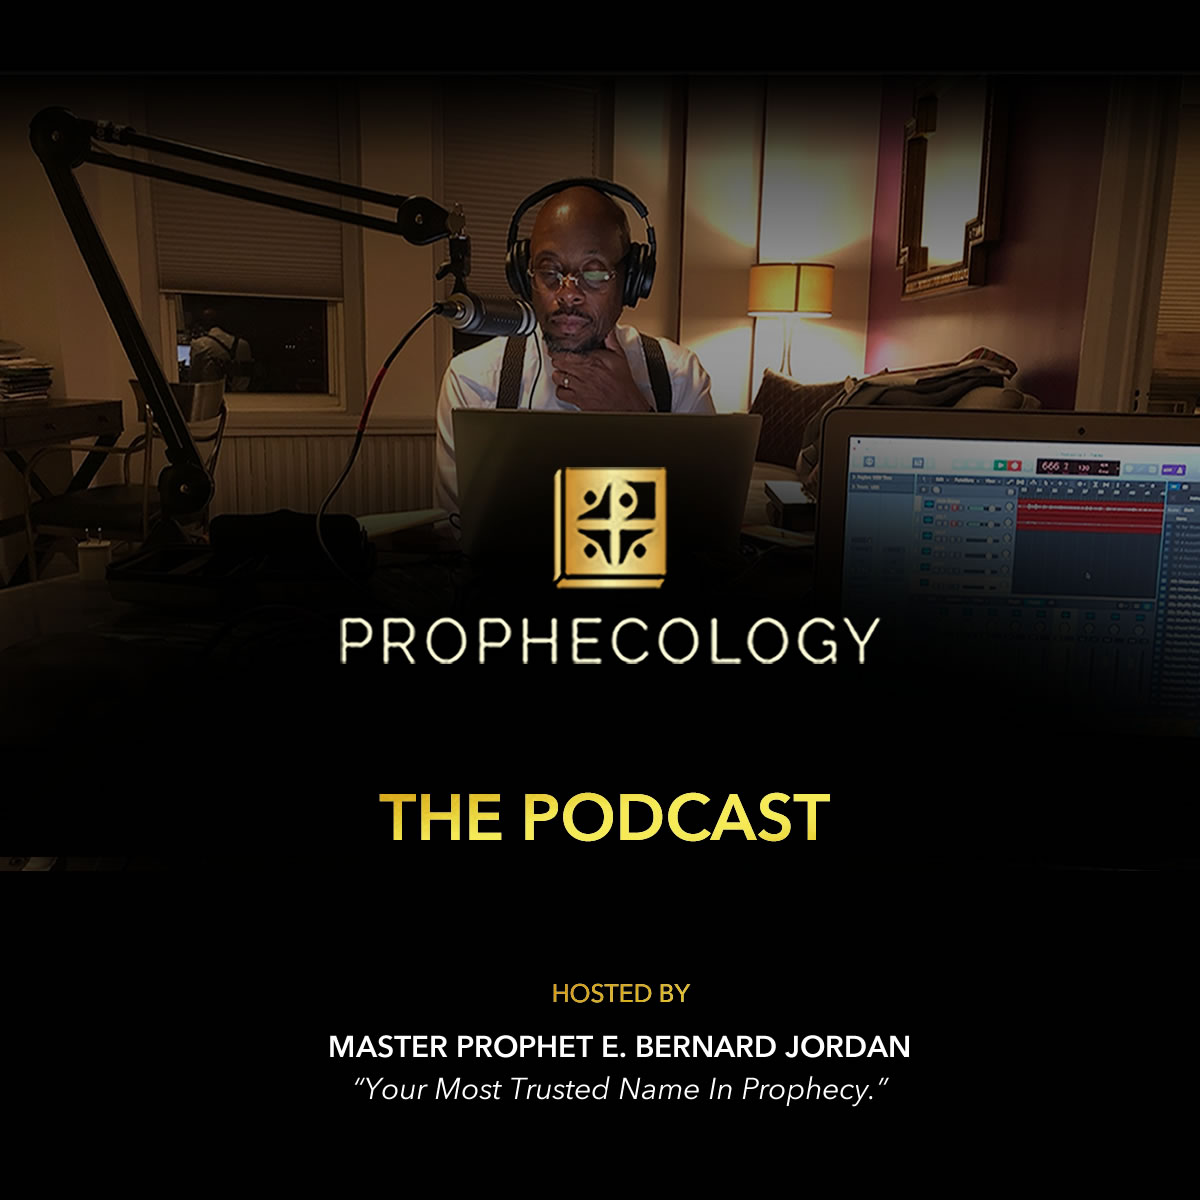 Prophecology The Podcast